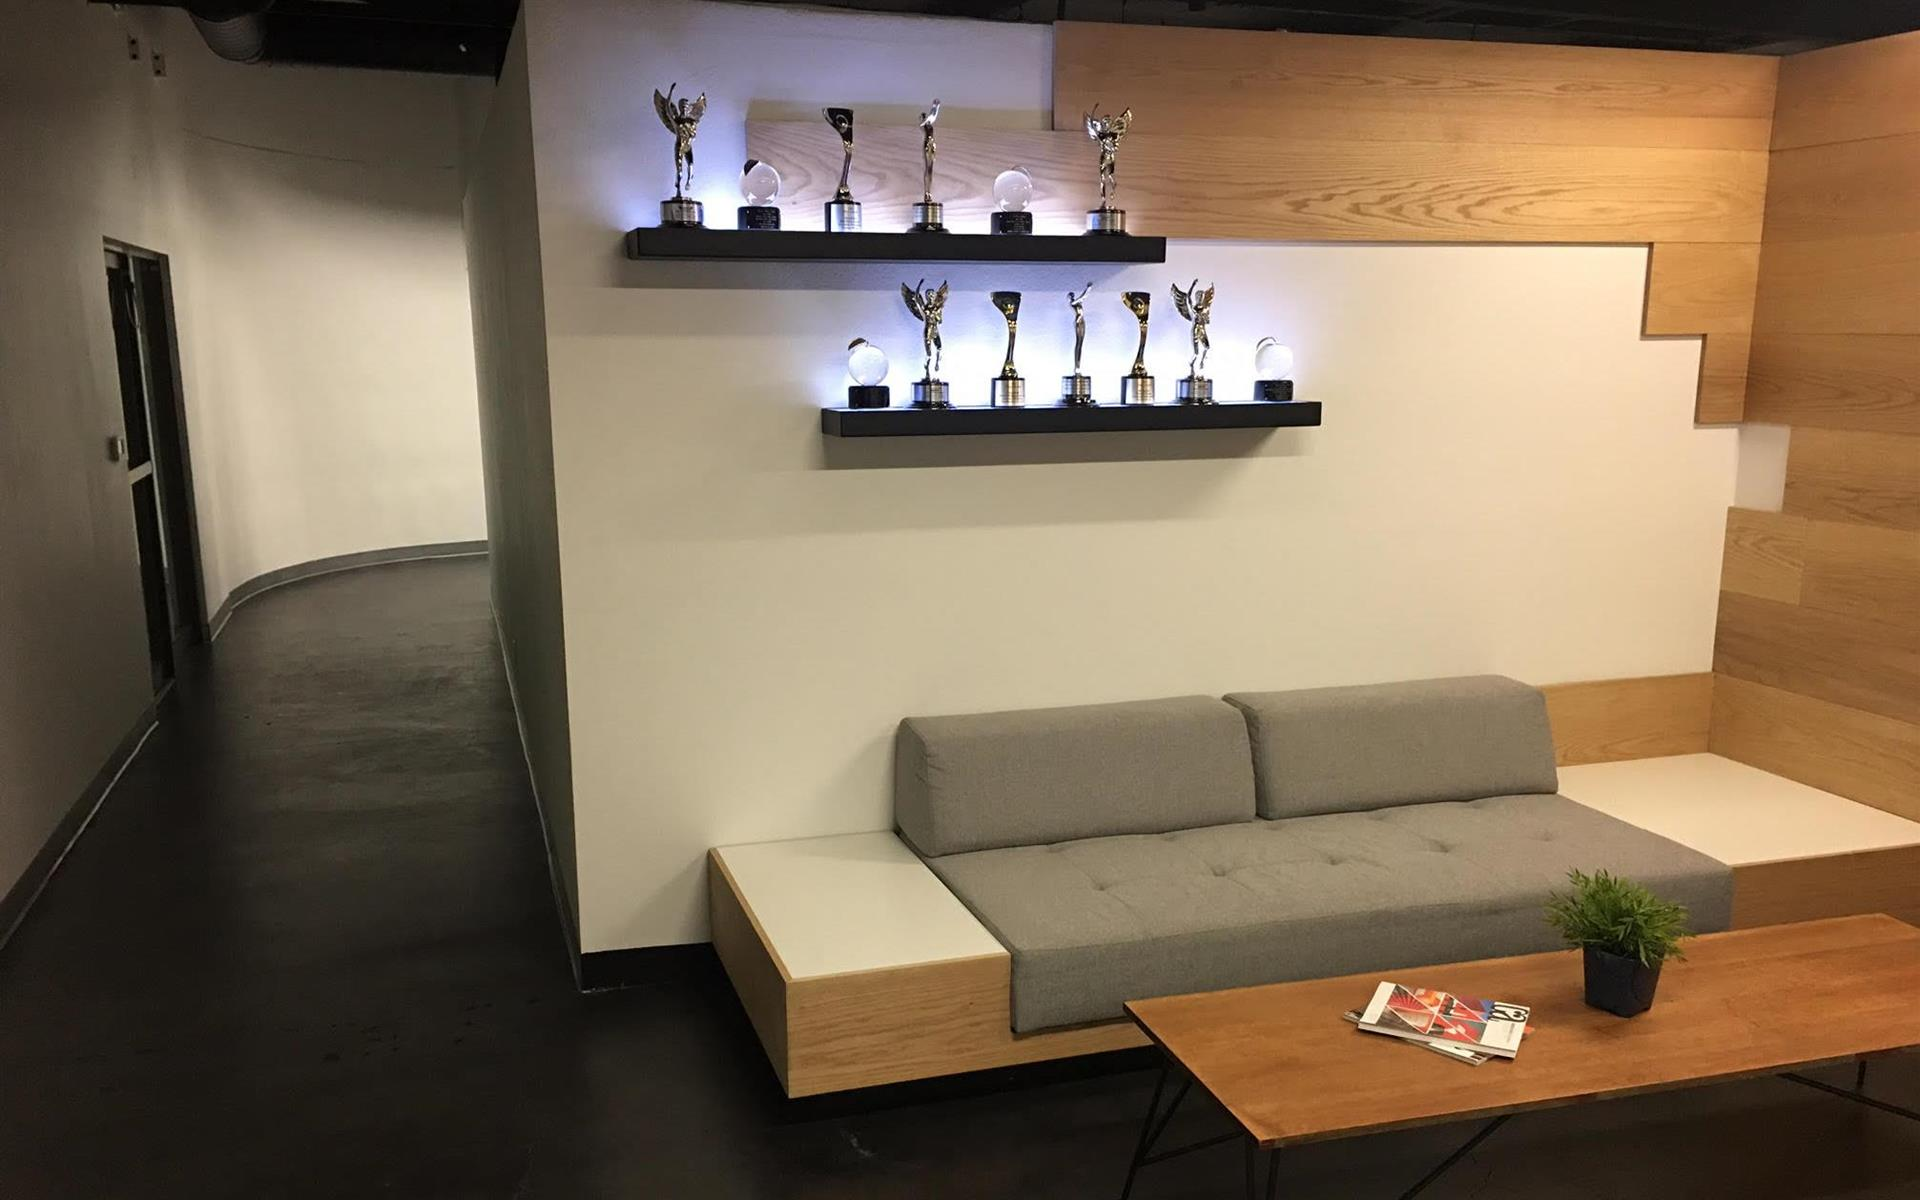 MoreYellow, Inc. - Open Work Space For Team